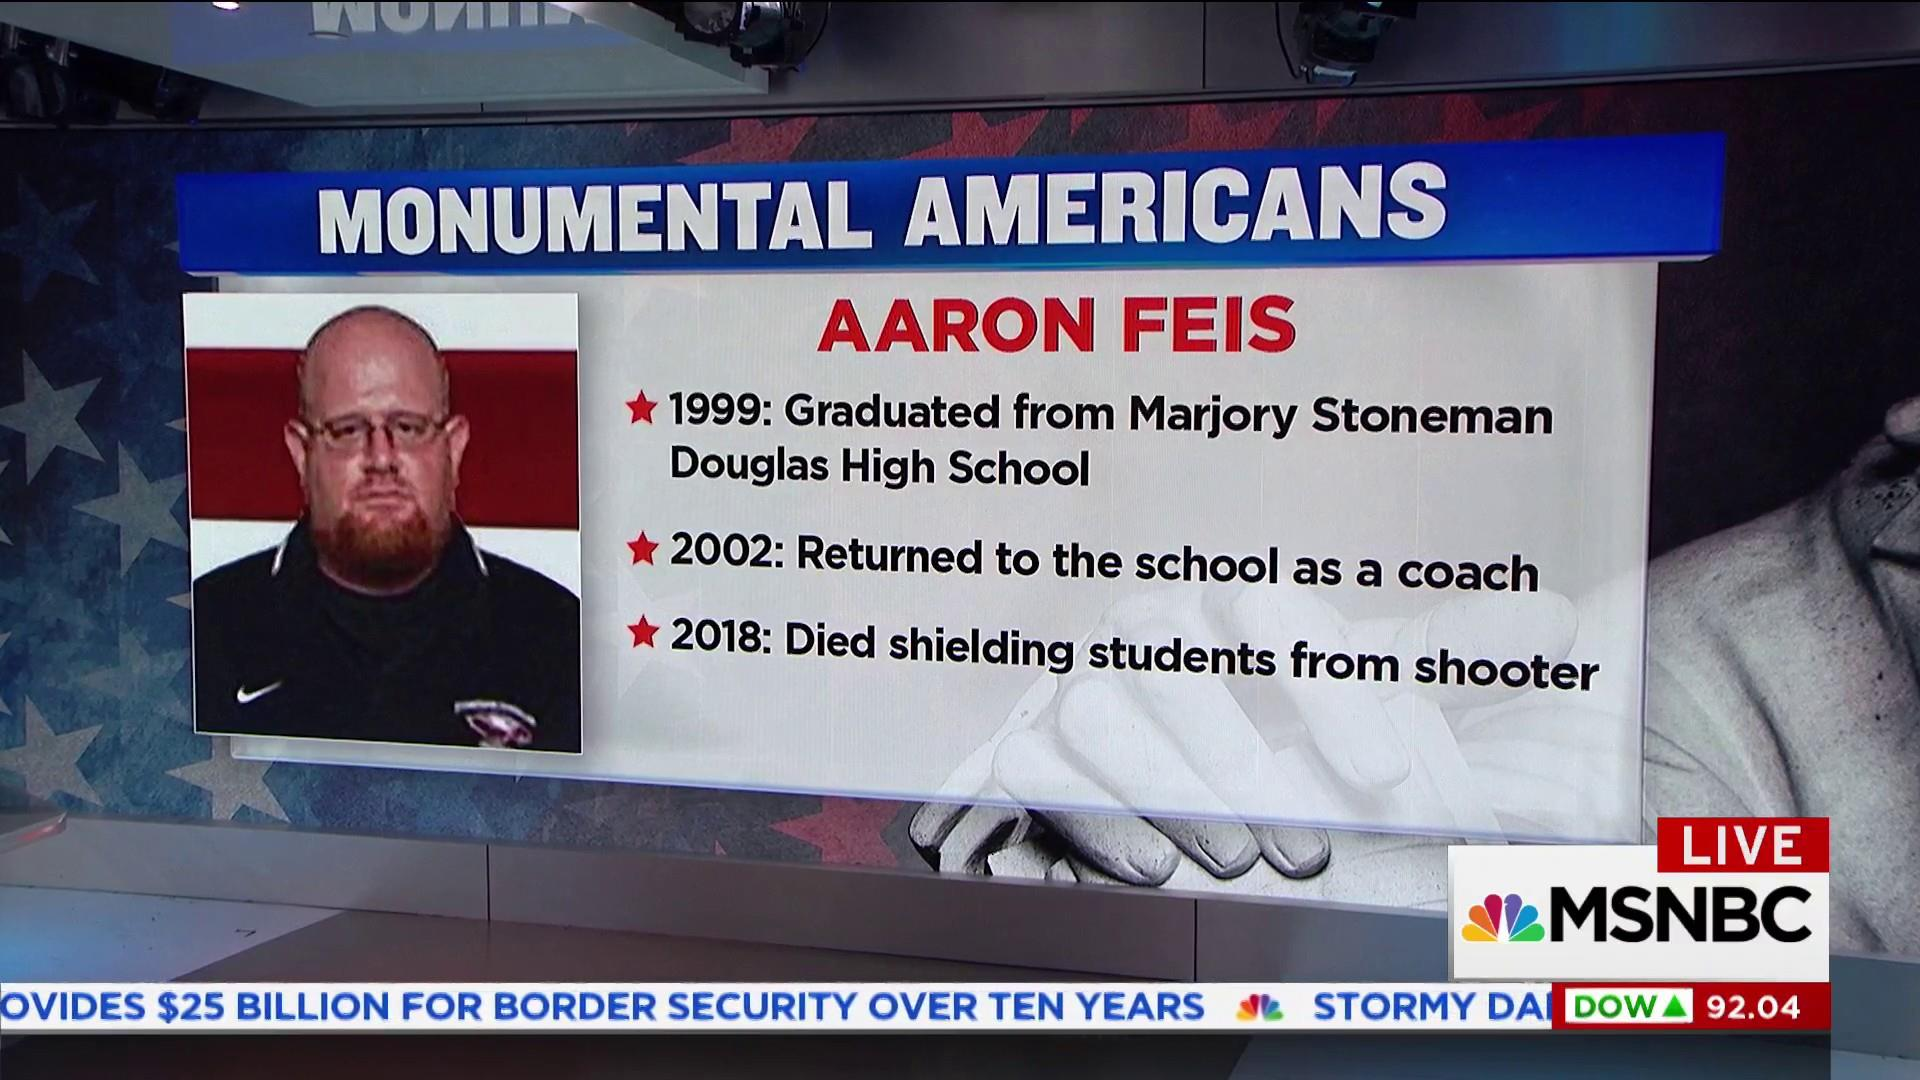 photo A Football Coach Died Shielding Students From Bullets in the Florida School Shooting